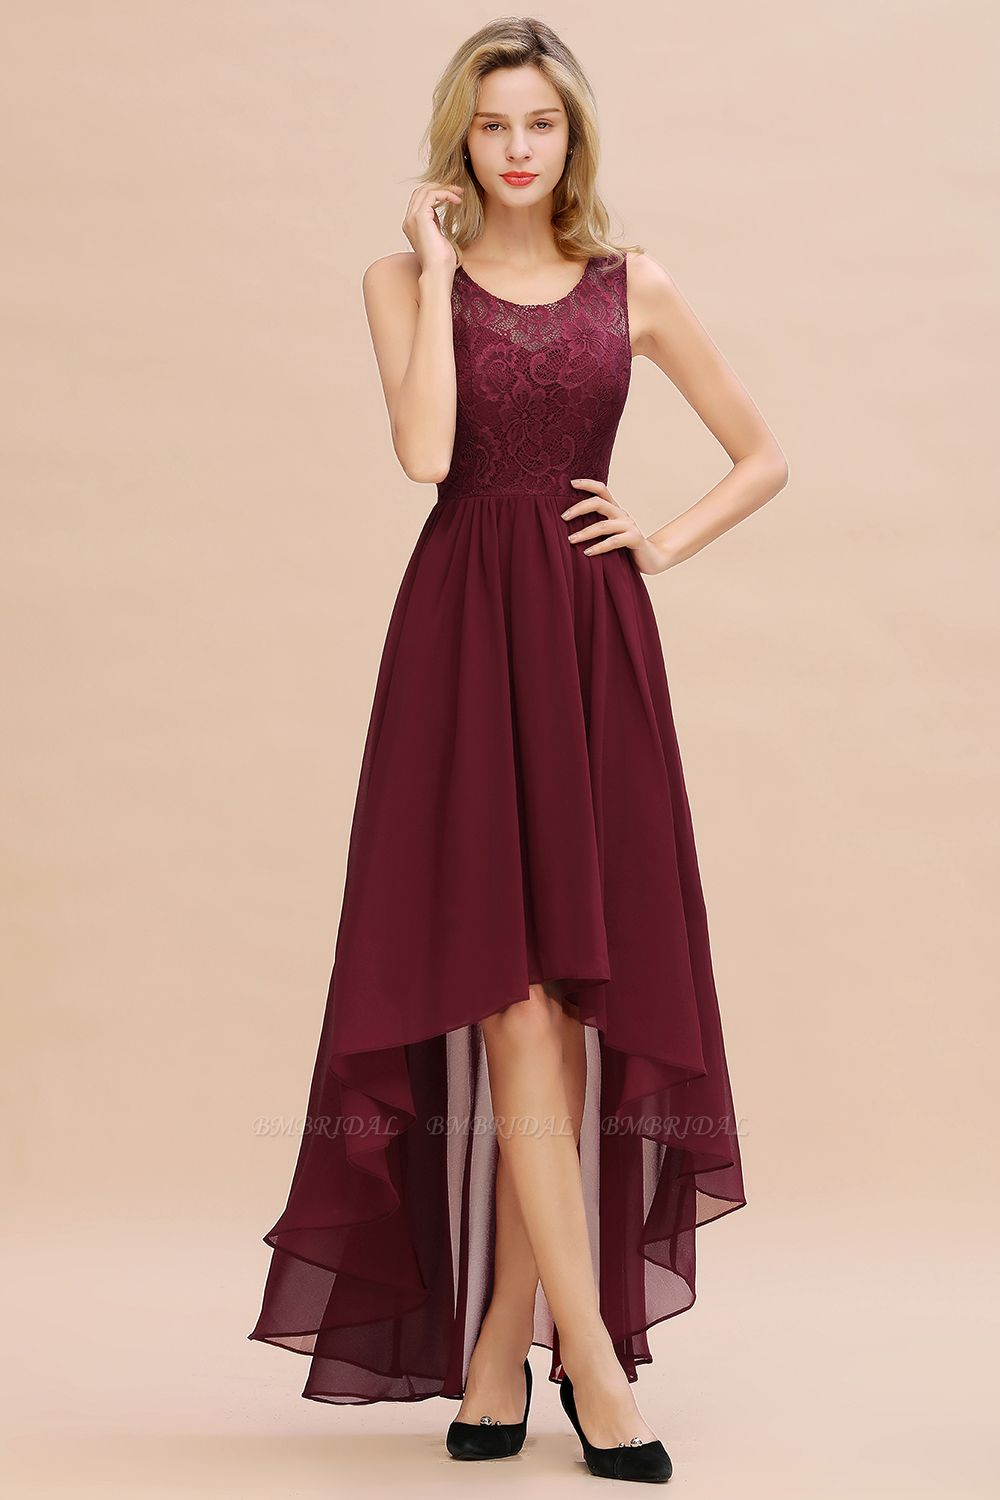 Affordable Hi-Lo Lace Sleeveless Burgundy Chiffon Bridesmaid Dress Online